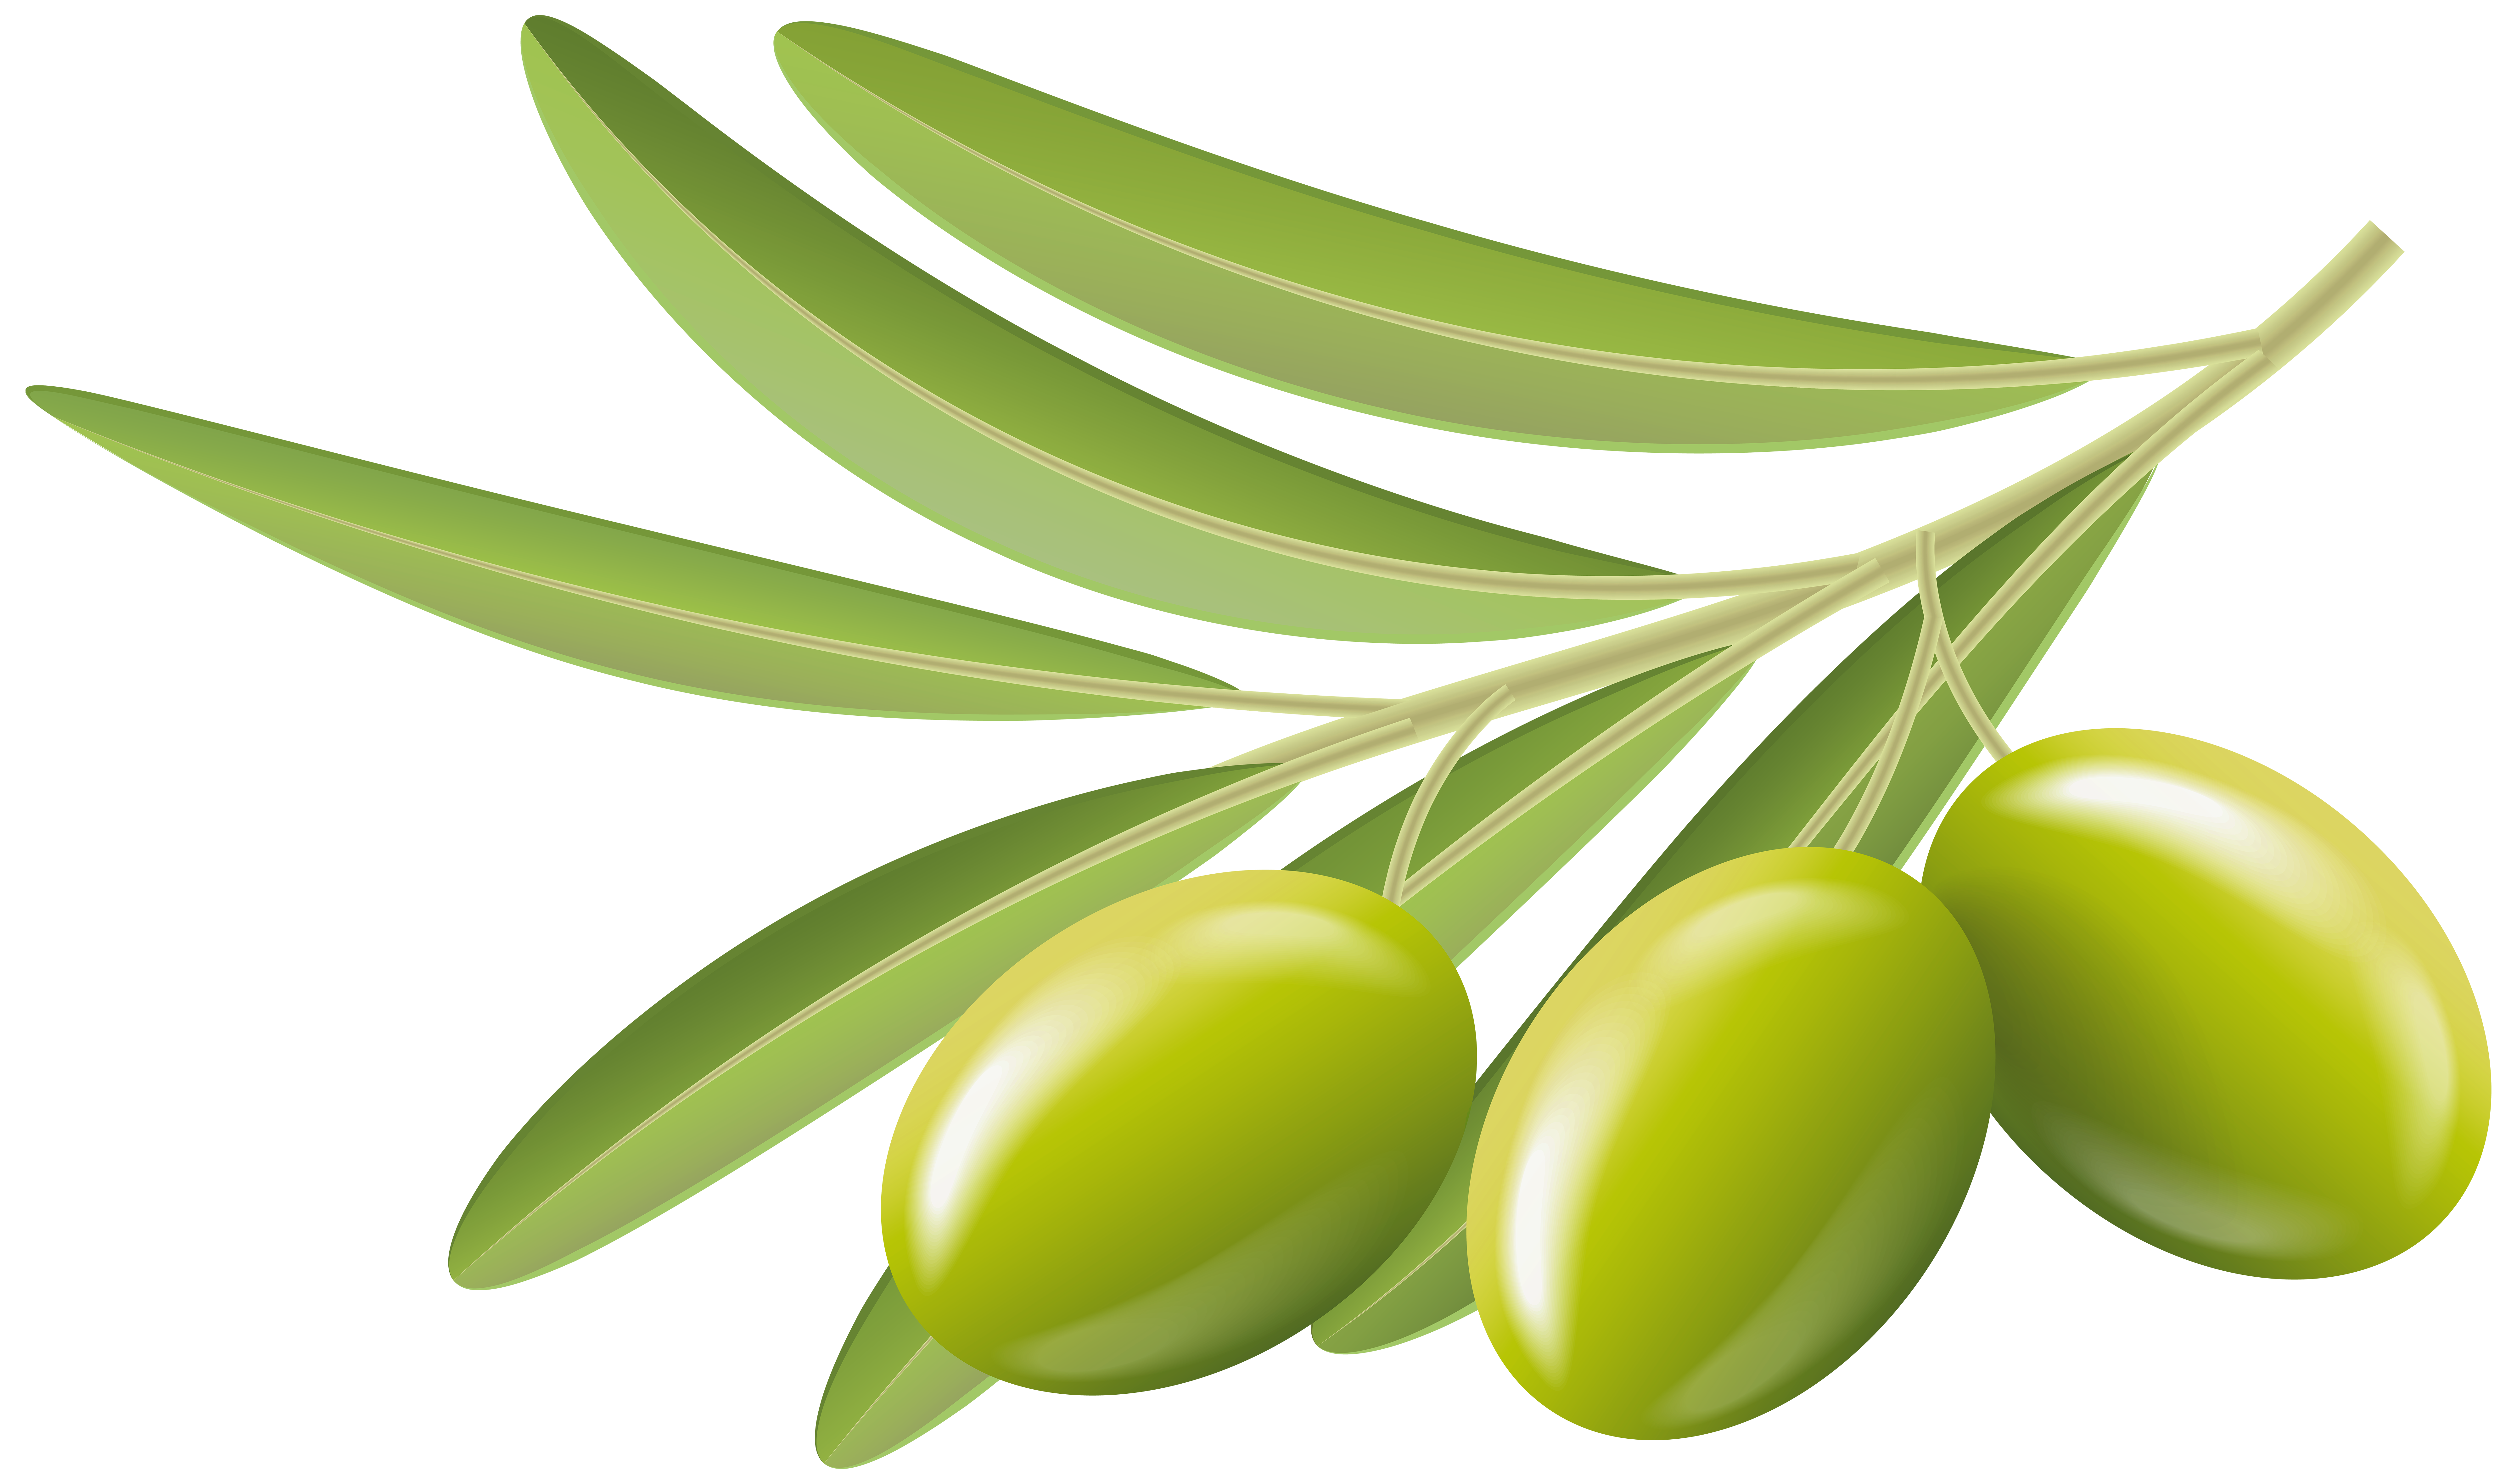 Olive clipart green olive Art Transparent Image Green Gallery